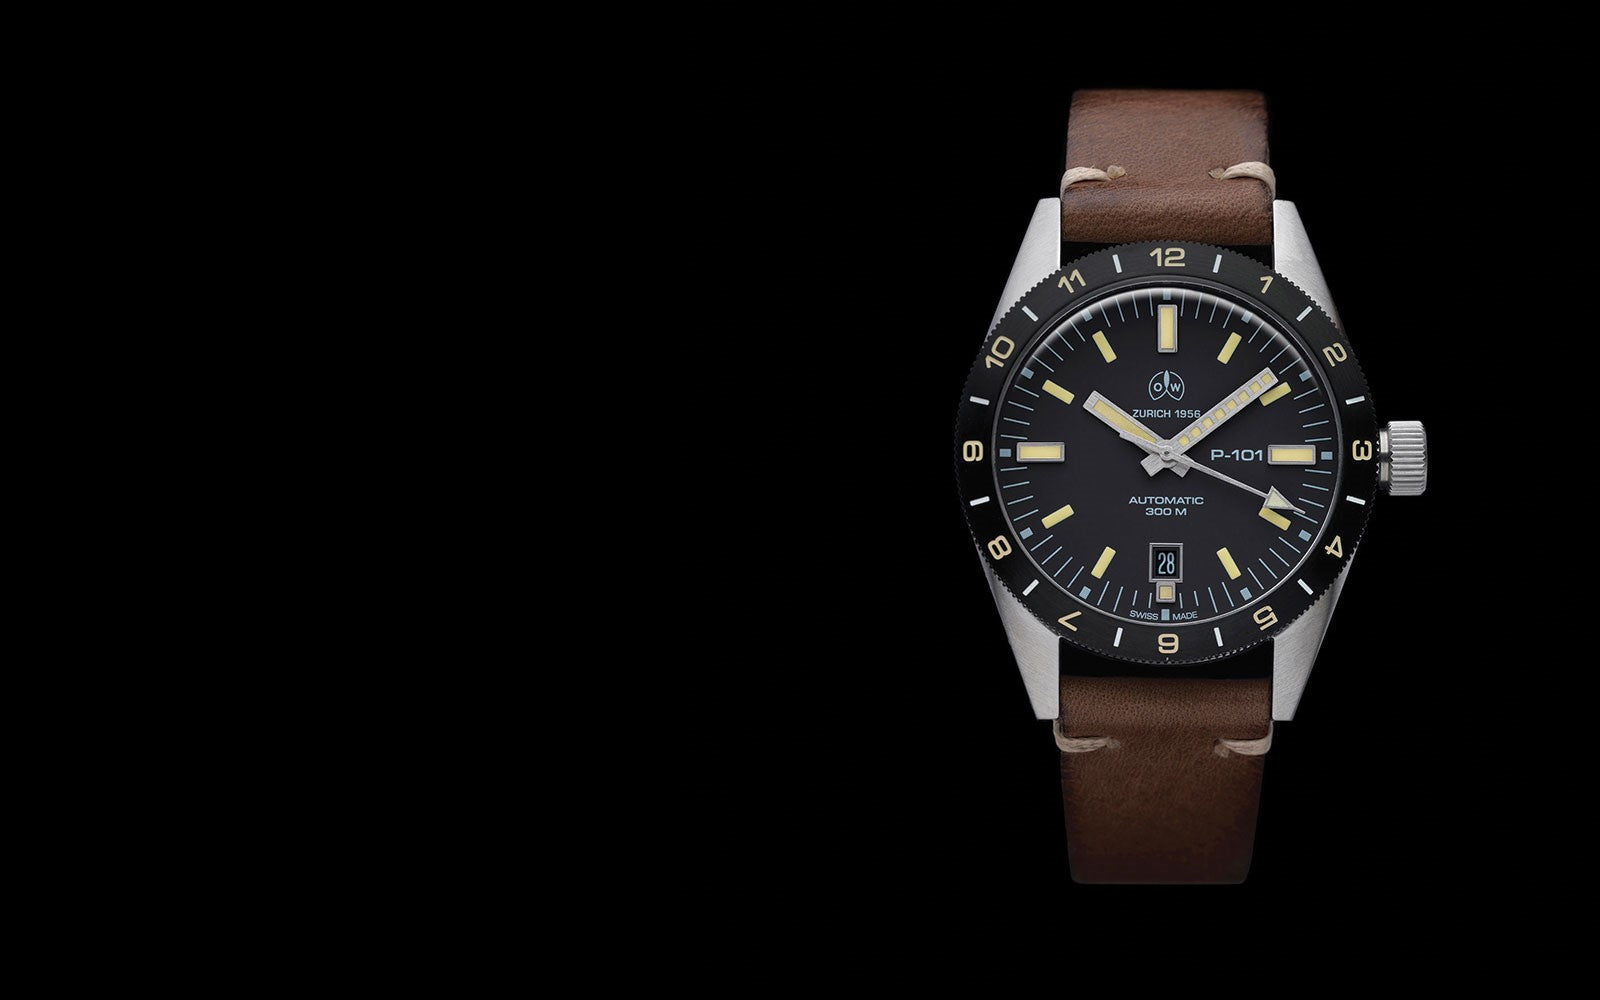 Ollech and Wajs P-101 pilot watch